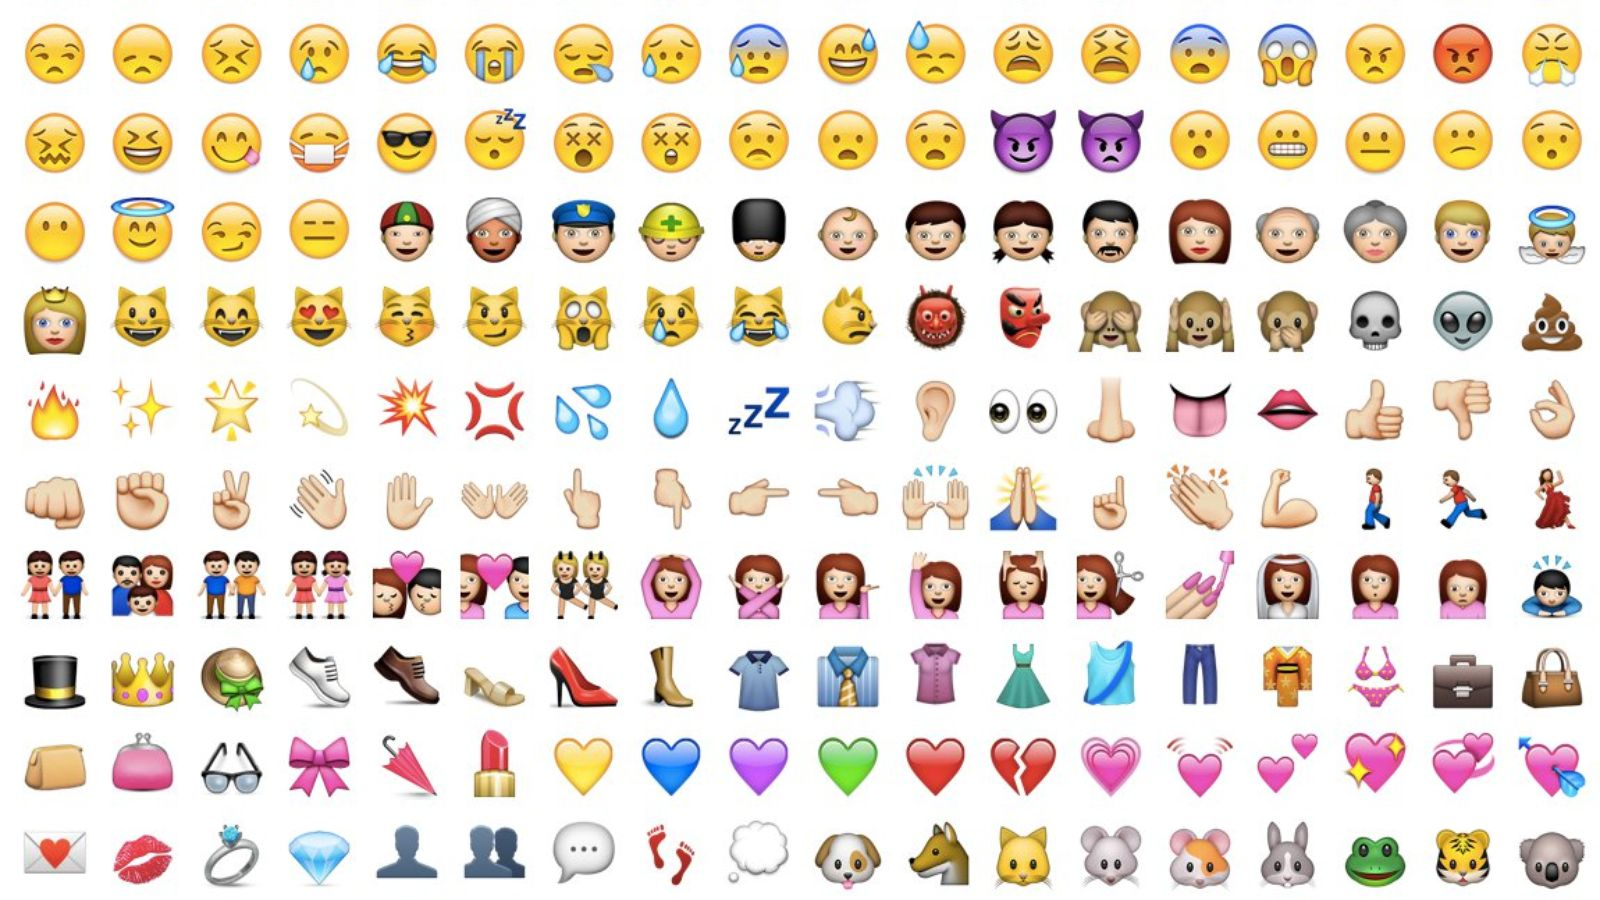 Text emoticons explained